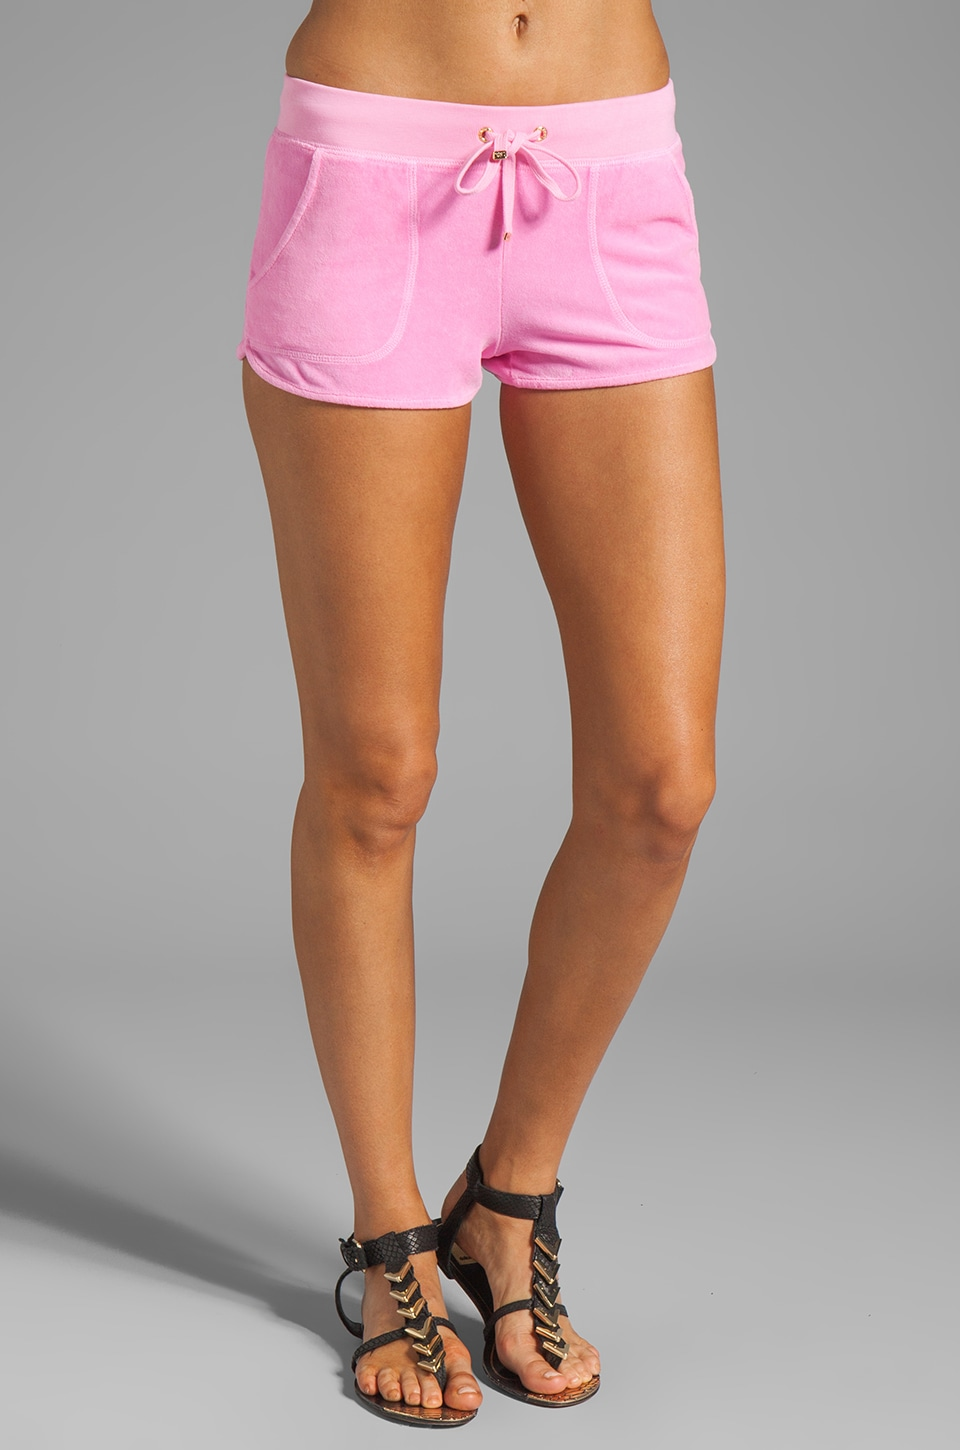 Juicy Couture Velour Neon Dolphin Short in Synthetic Pink